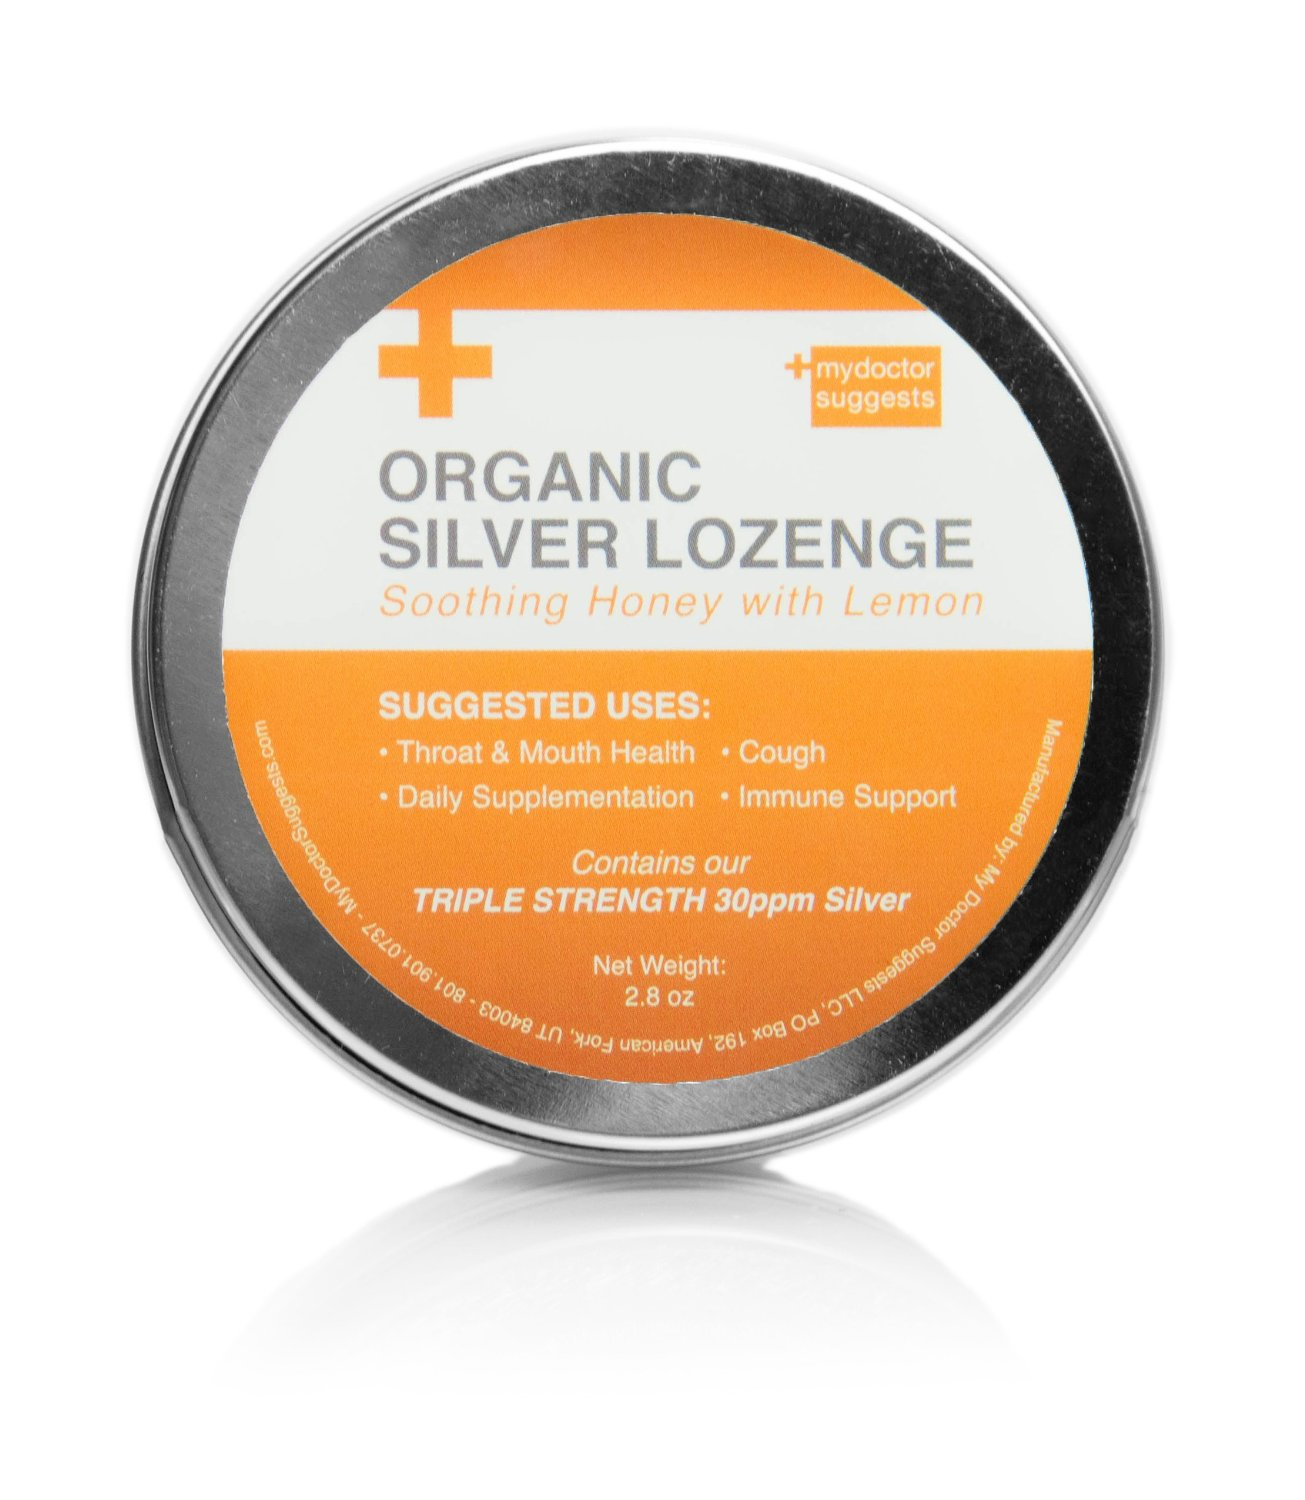 Organic Silver Lozenges - Soothing Honey with Lemon